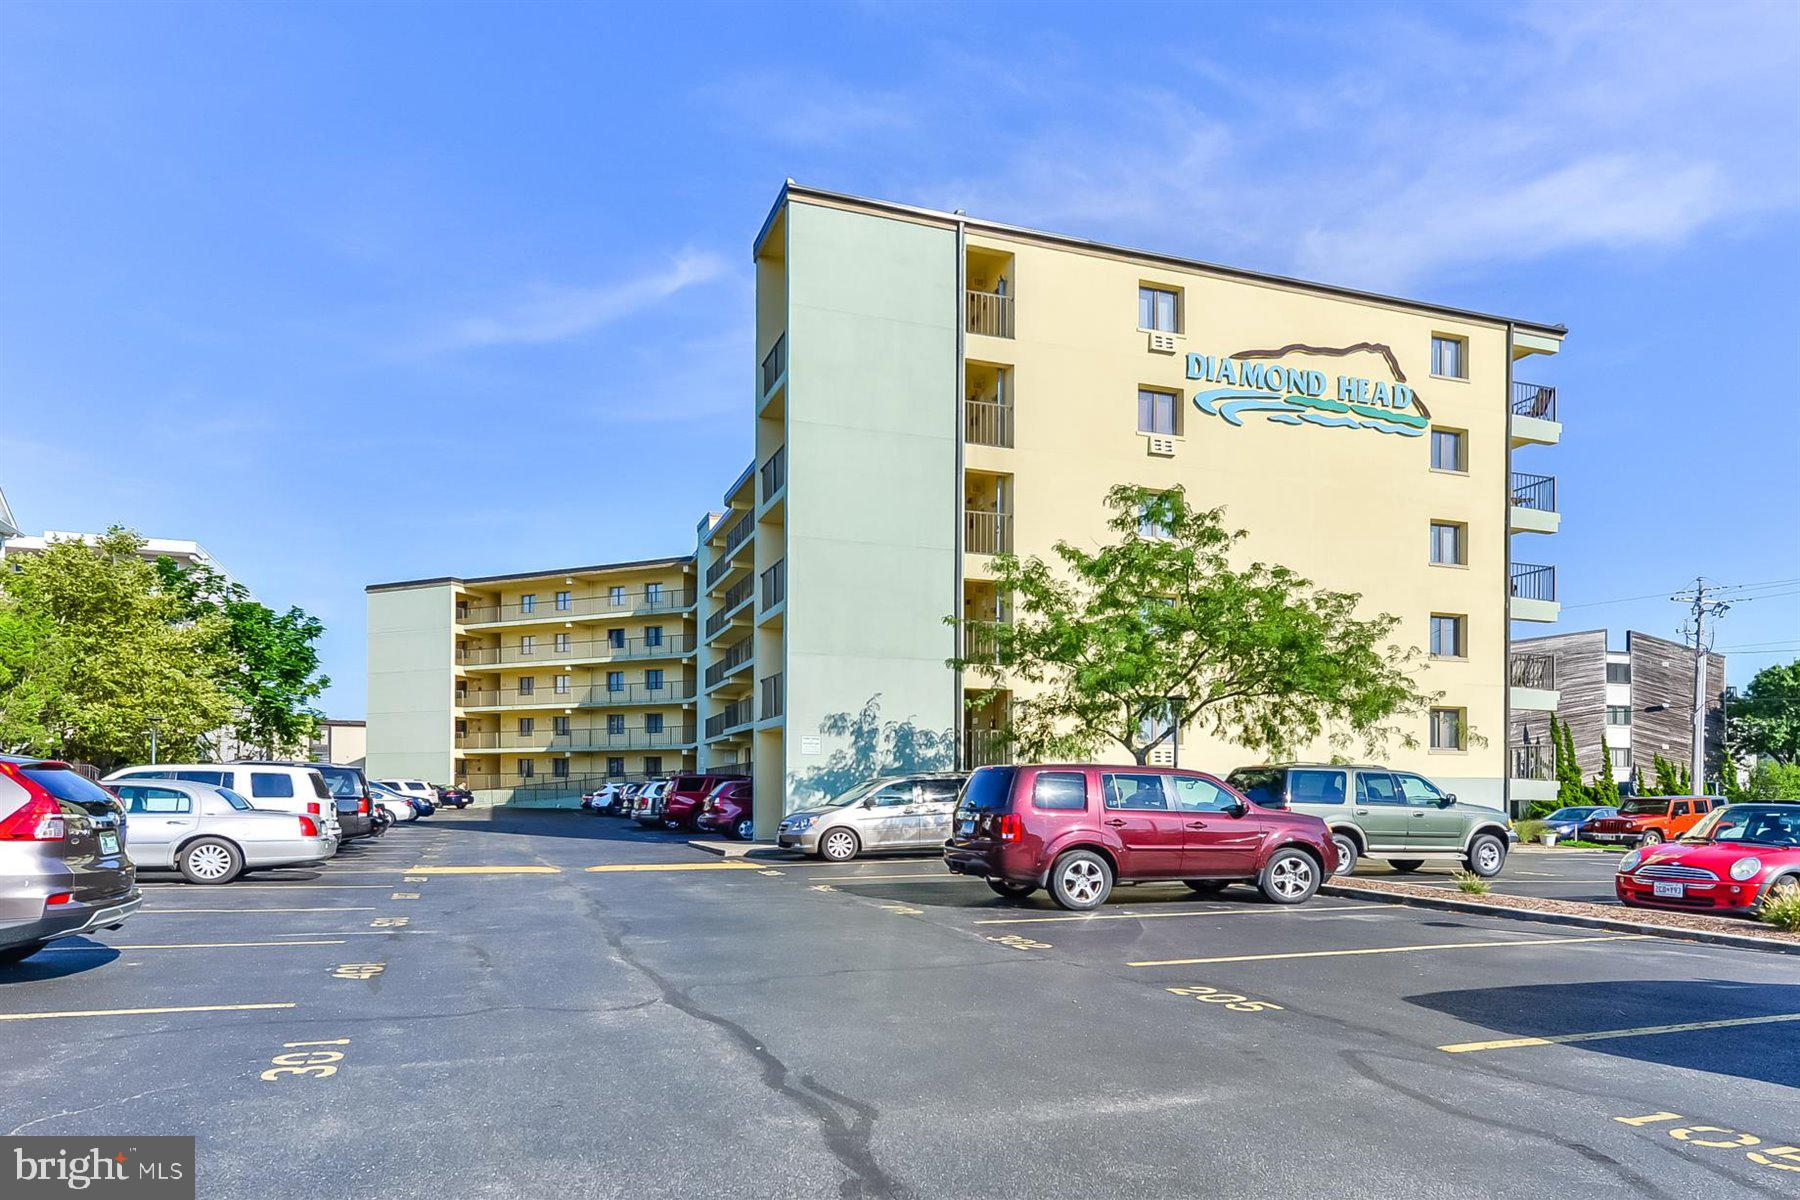 99% Oceanfront!! 4th floor Beauty! Fully furnished and ready to go. Property includes 2 deeded parking spots, great outdoor pool and only 50 steps to the Sand! Building renovations coming- see in docs. All paid for! Well run building.